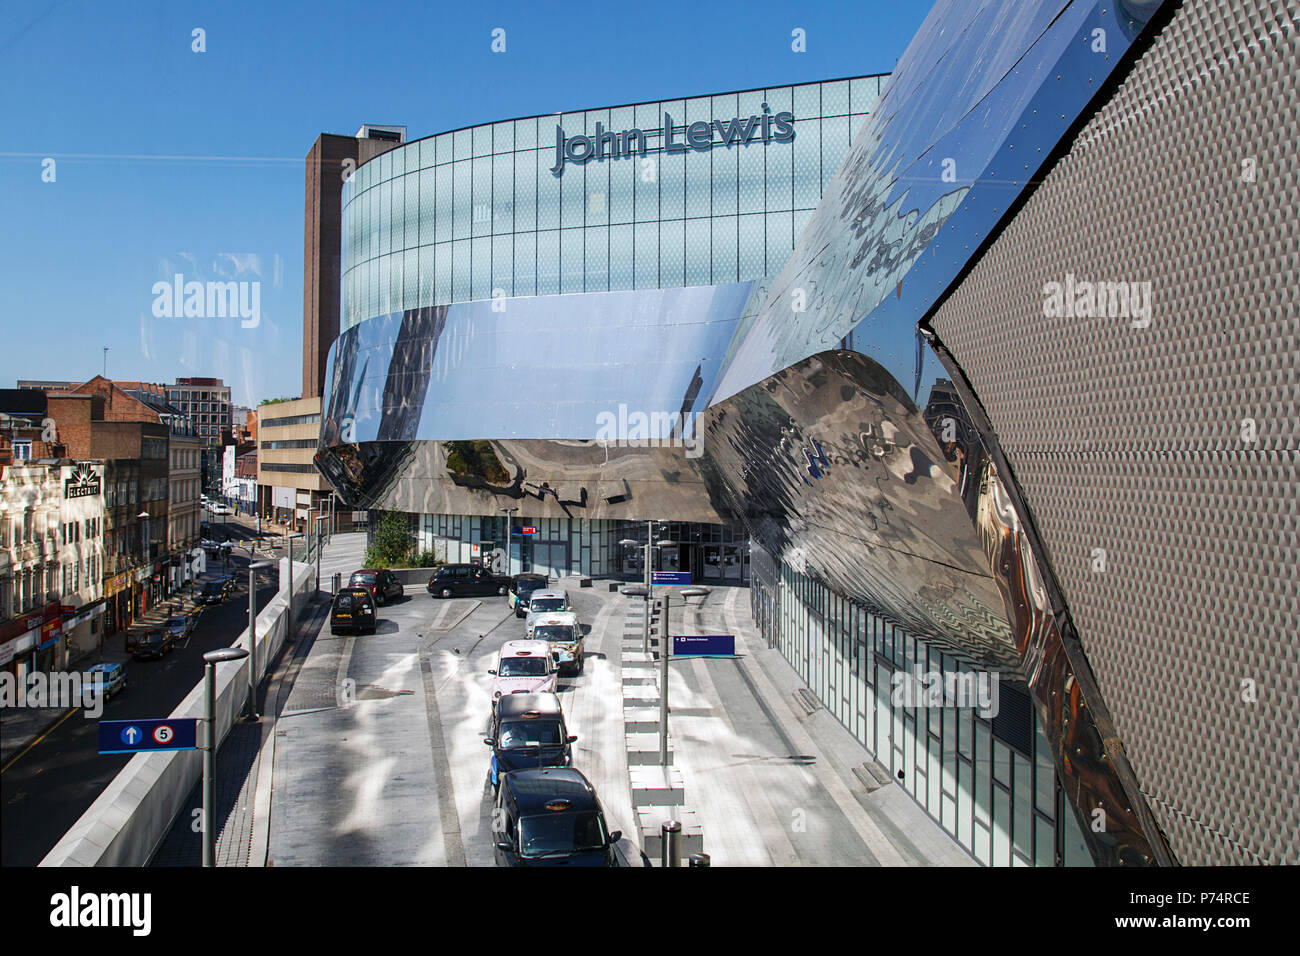 Birmingham, UK: June 29, 2018: Taxi rank at the John Lewis department store Birmingham. John Lewis sells high end merchandise and luxury foods. - Stock Image